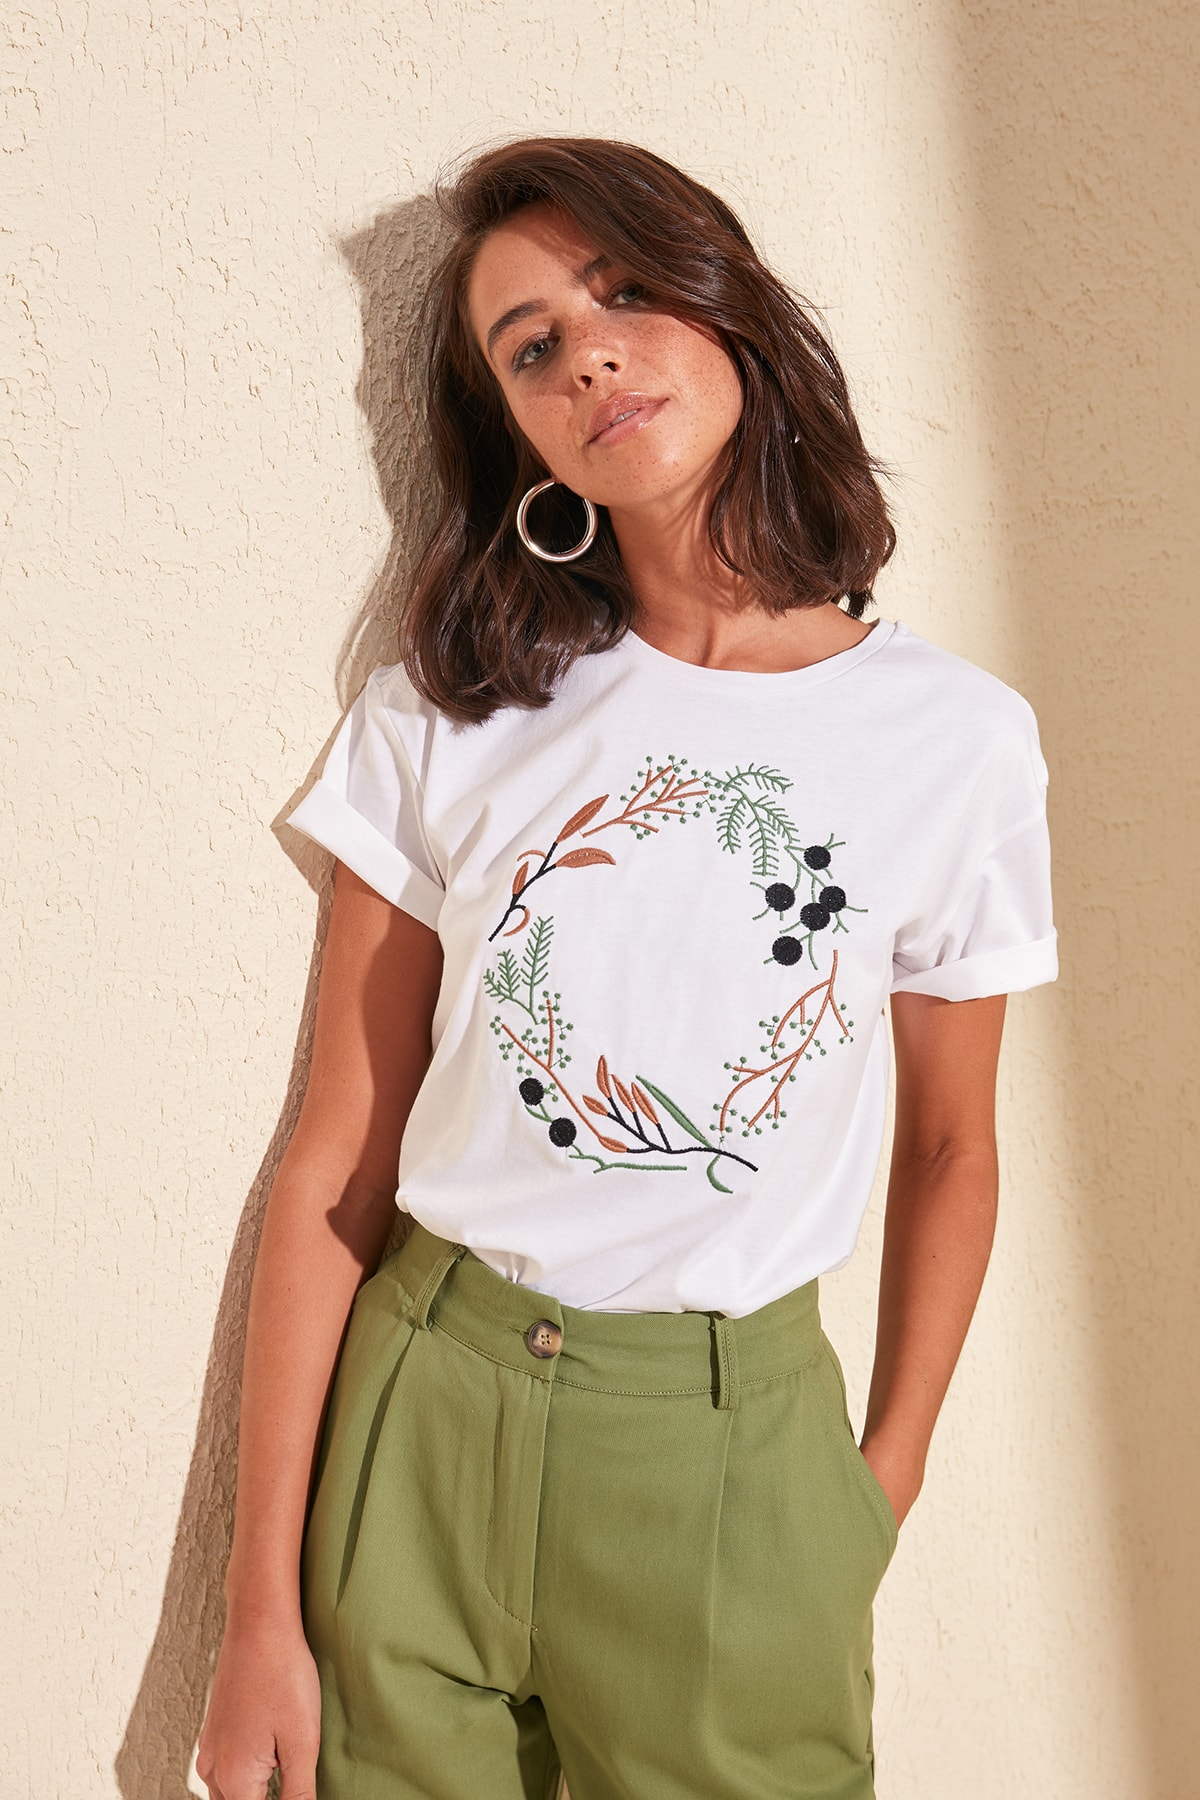 Trendyol Women's Summer Basic Cotton Casual T-Shirt White Embroidered Knitted  Streetwear Tops Women Basic Casual TShirt TWOSS19PB0018